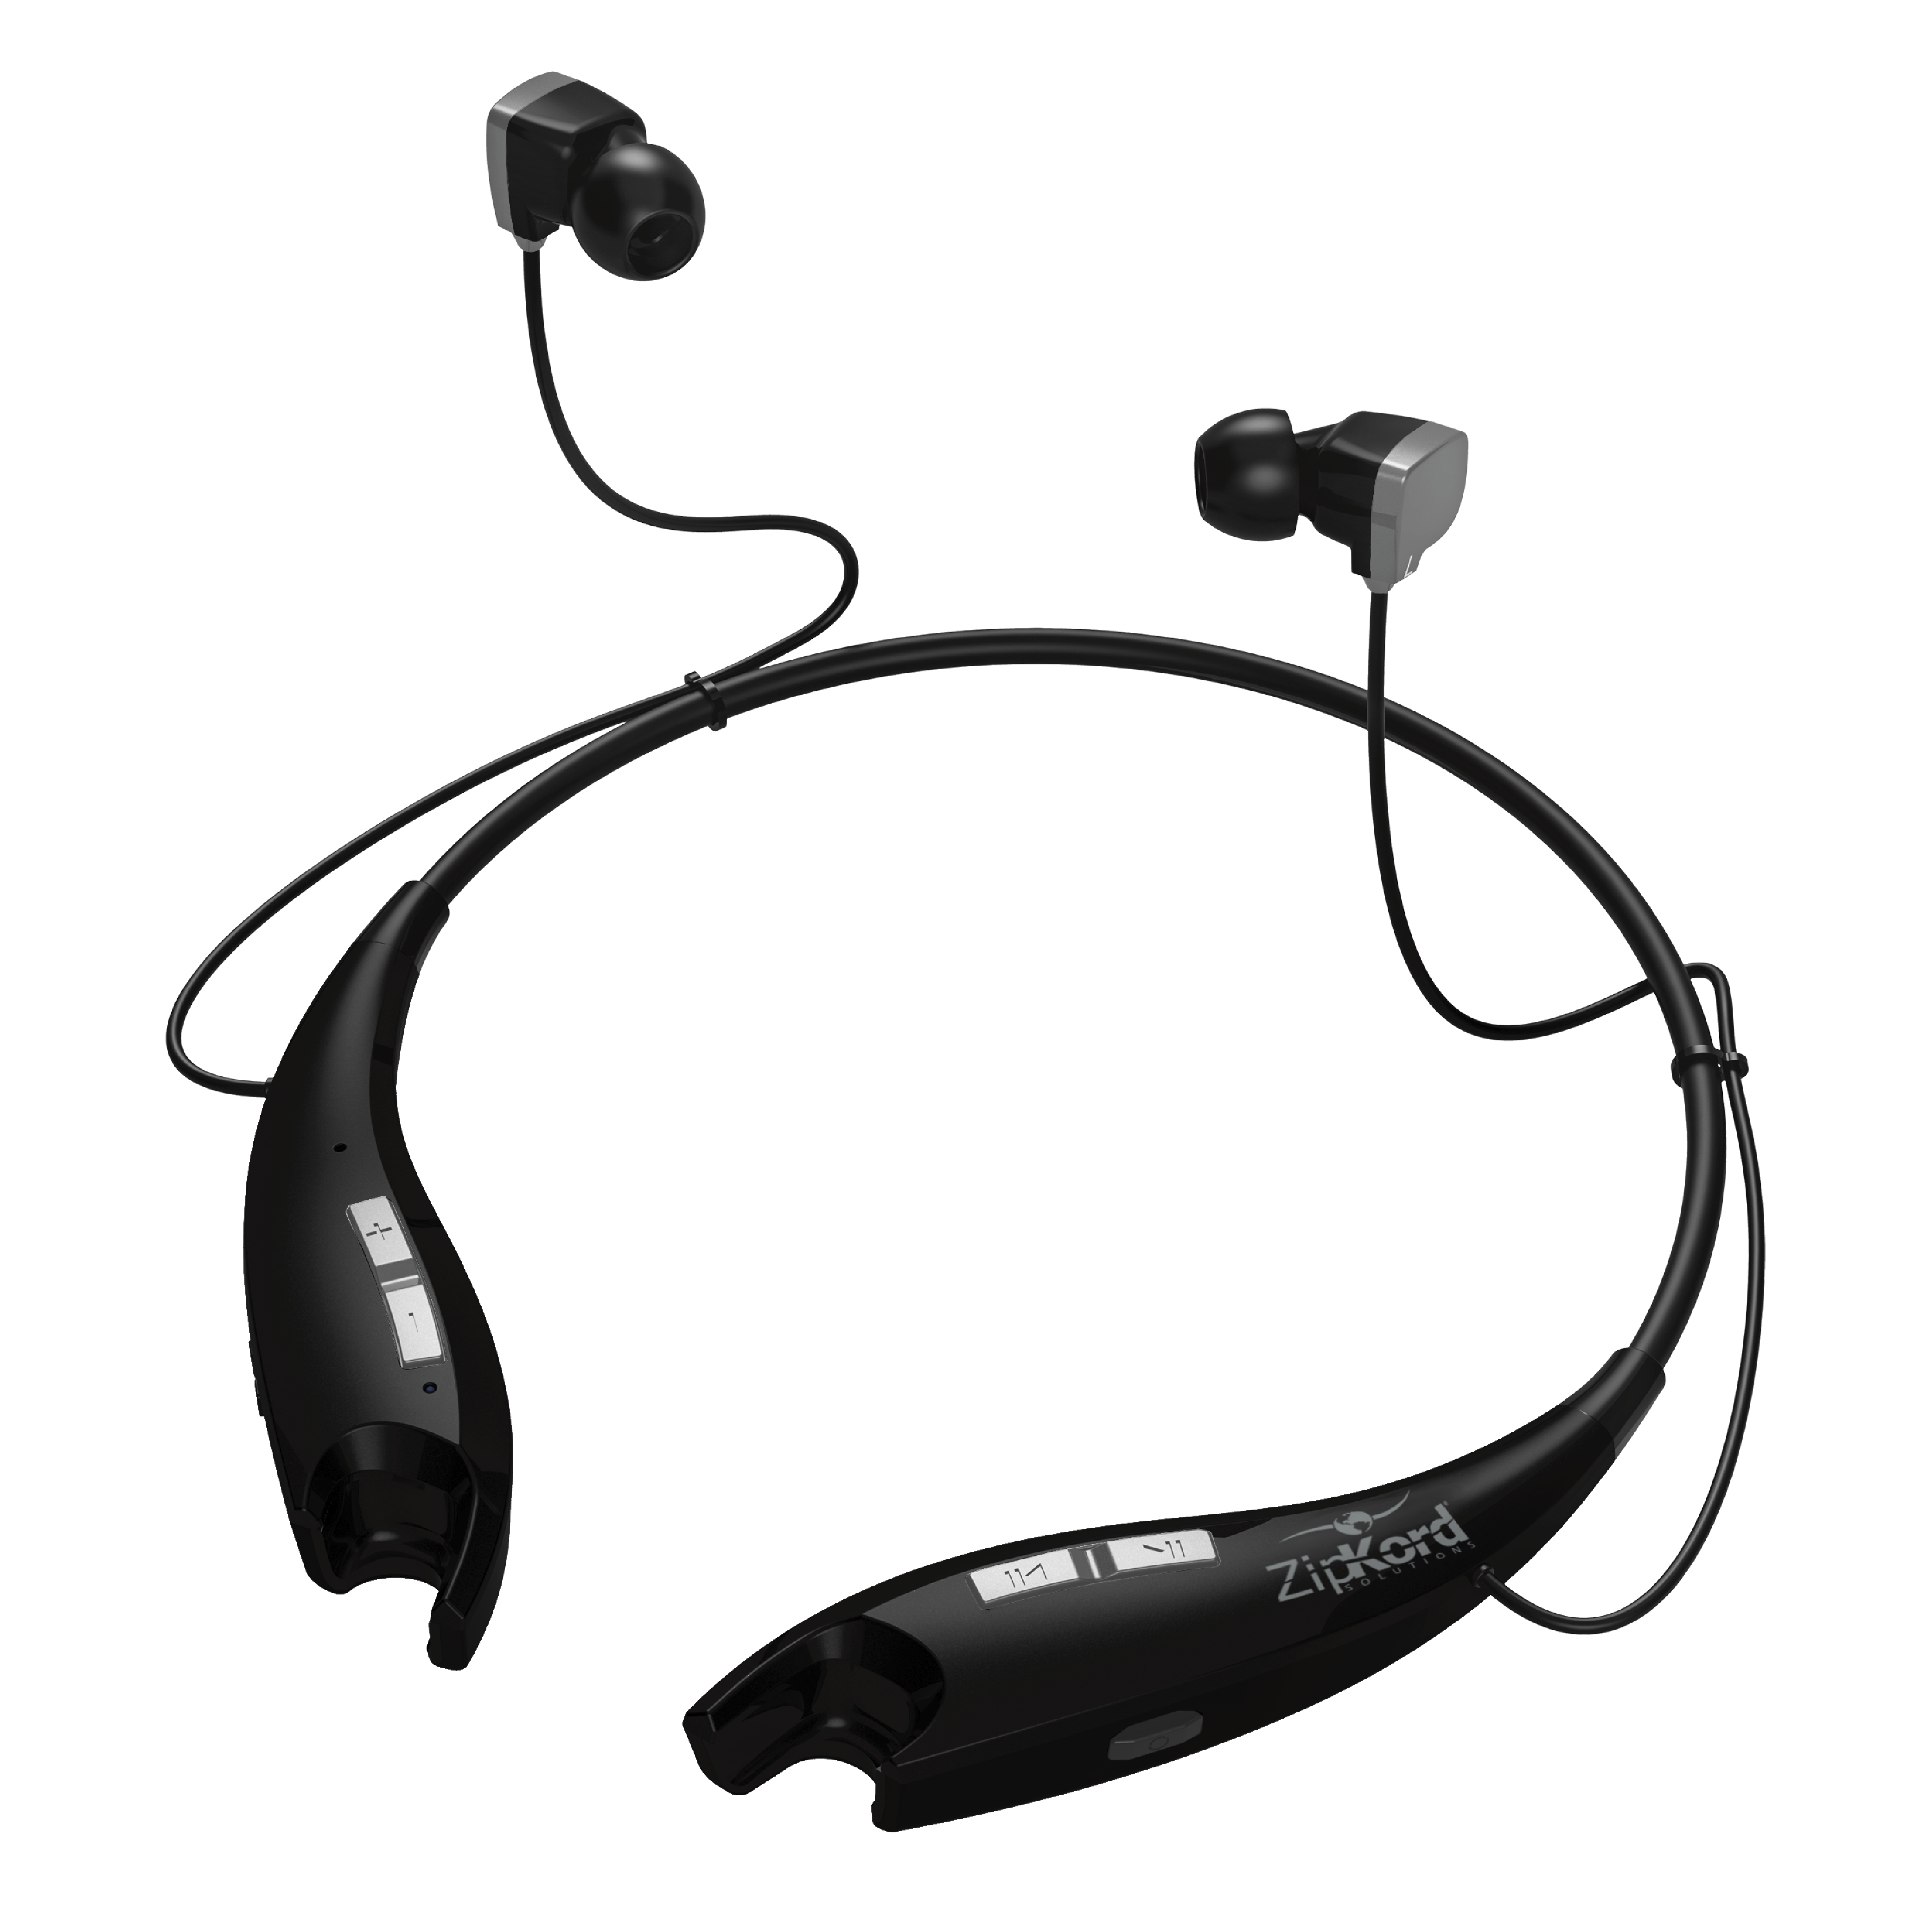 Bluetooth Headset Png - Soundz Pro Bluetooth® Headset – Zipkord